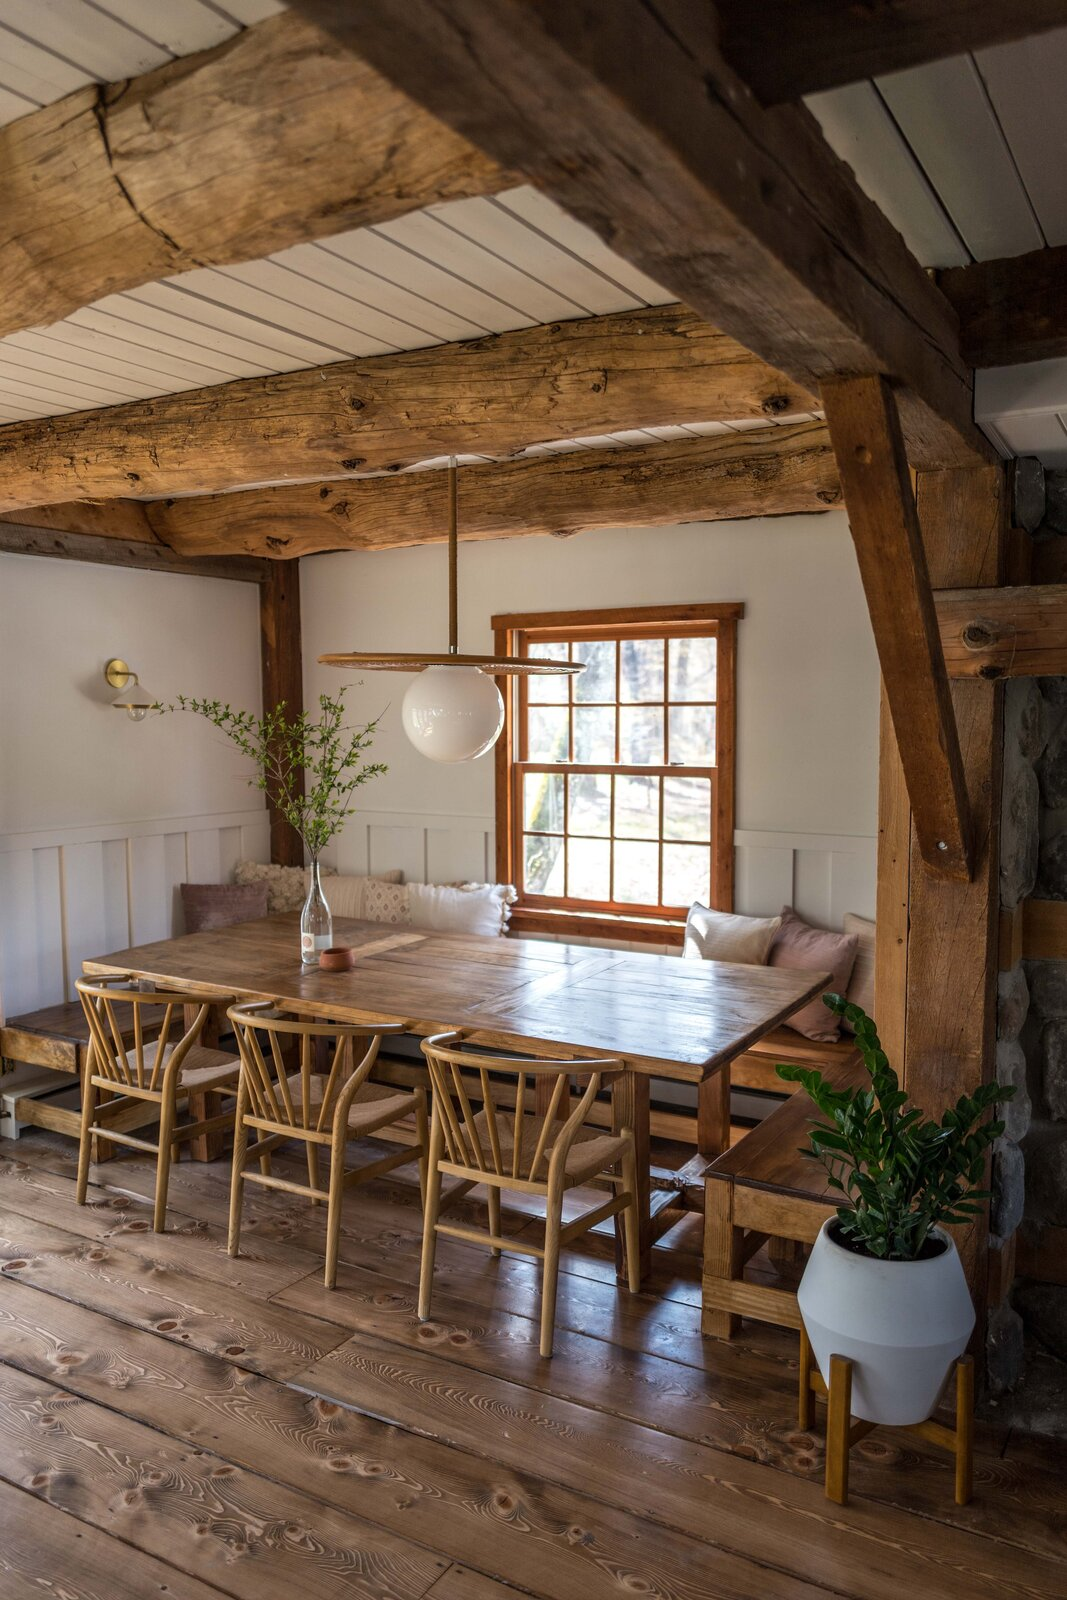 The Hunter Barnhouse by Danielle and Ely Franko dining table and bench